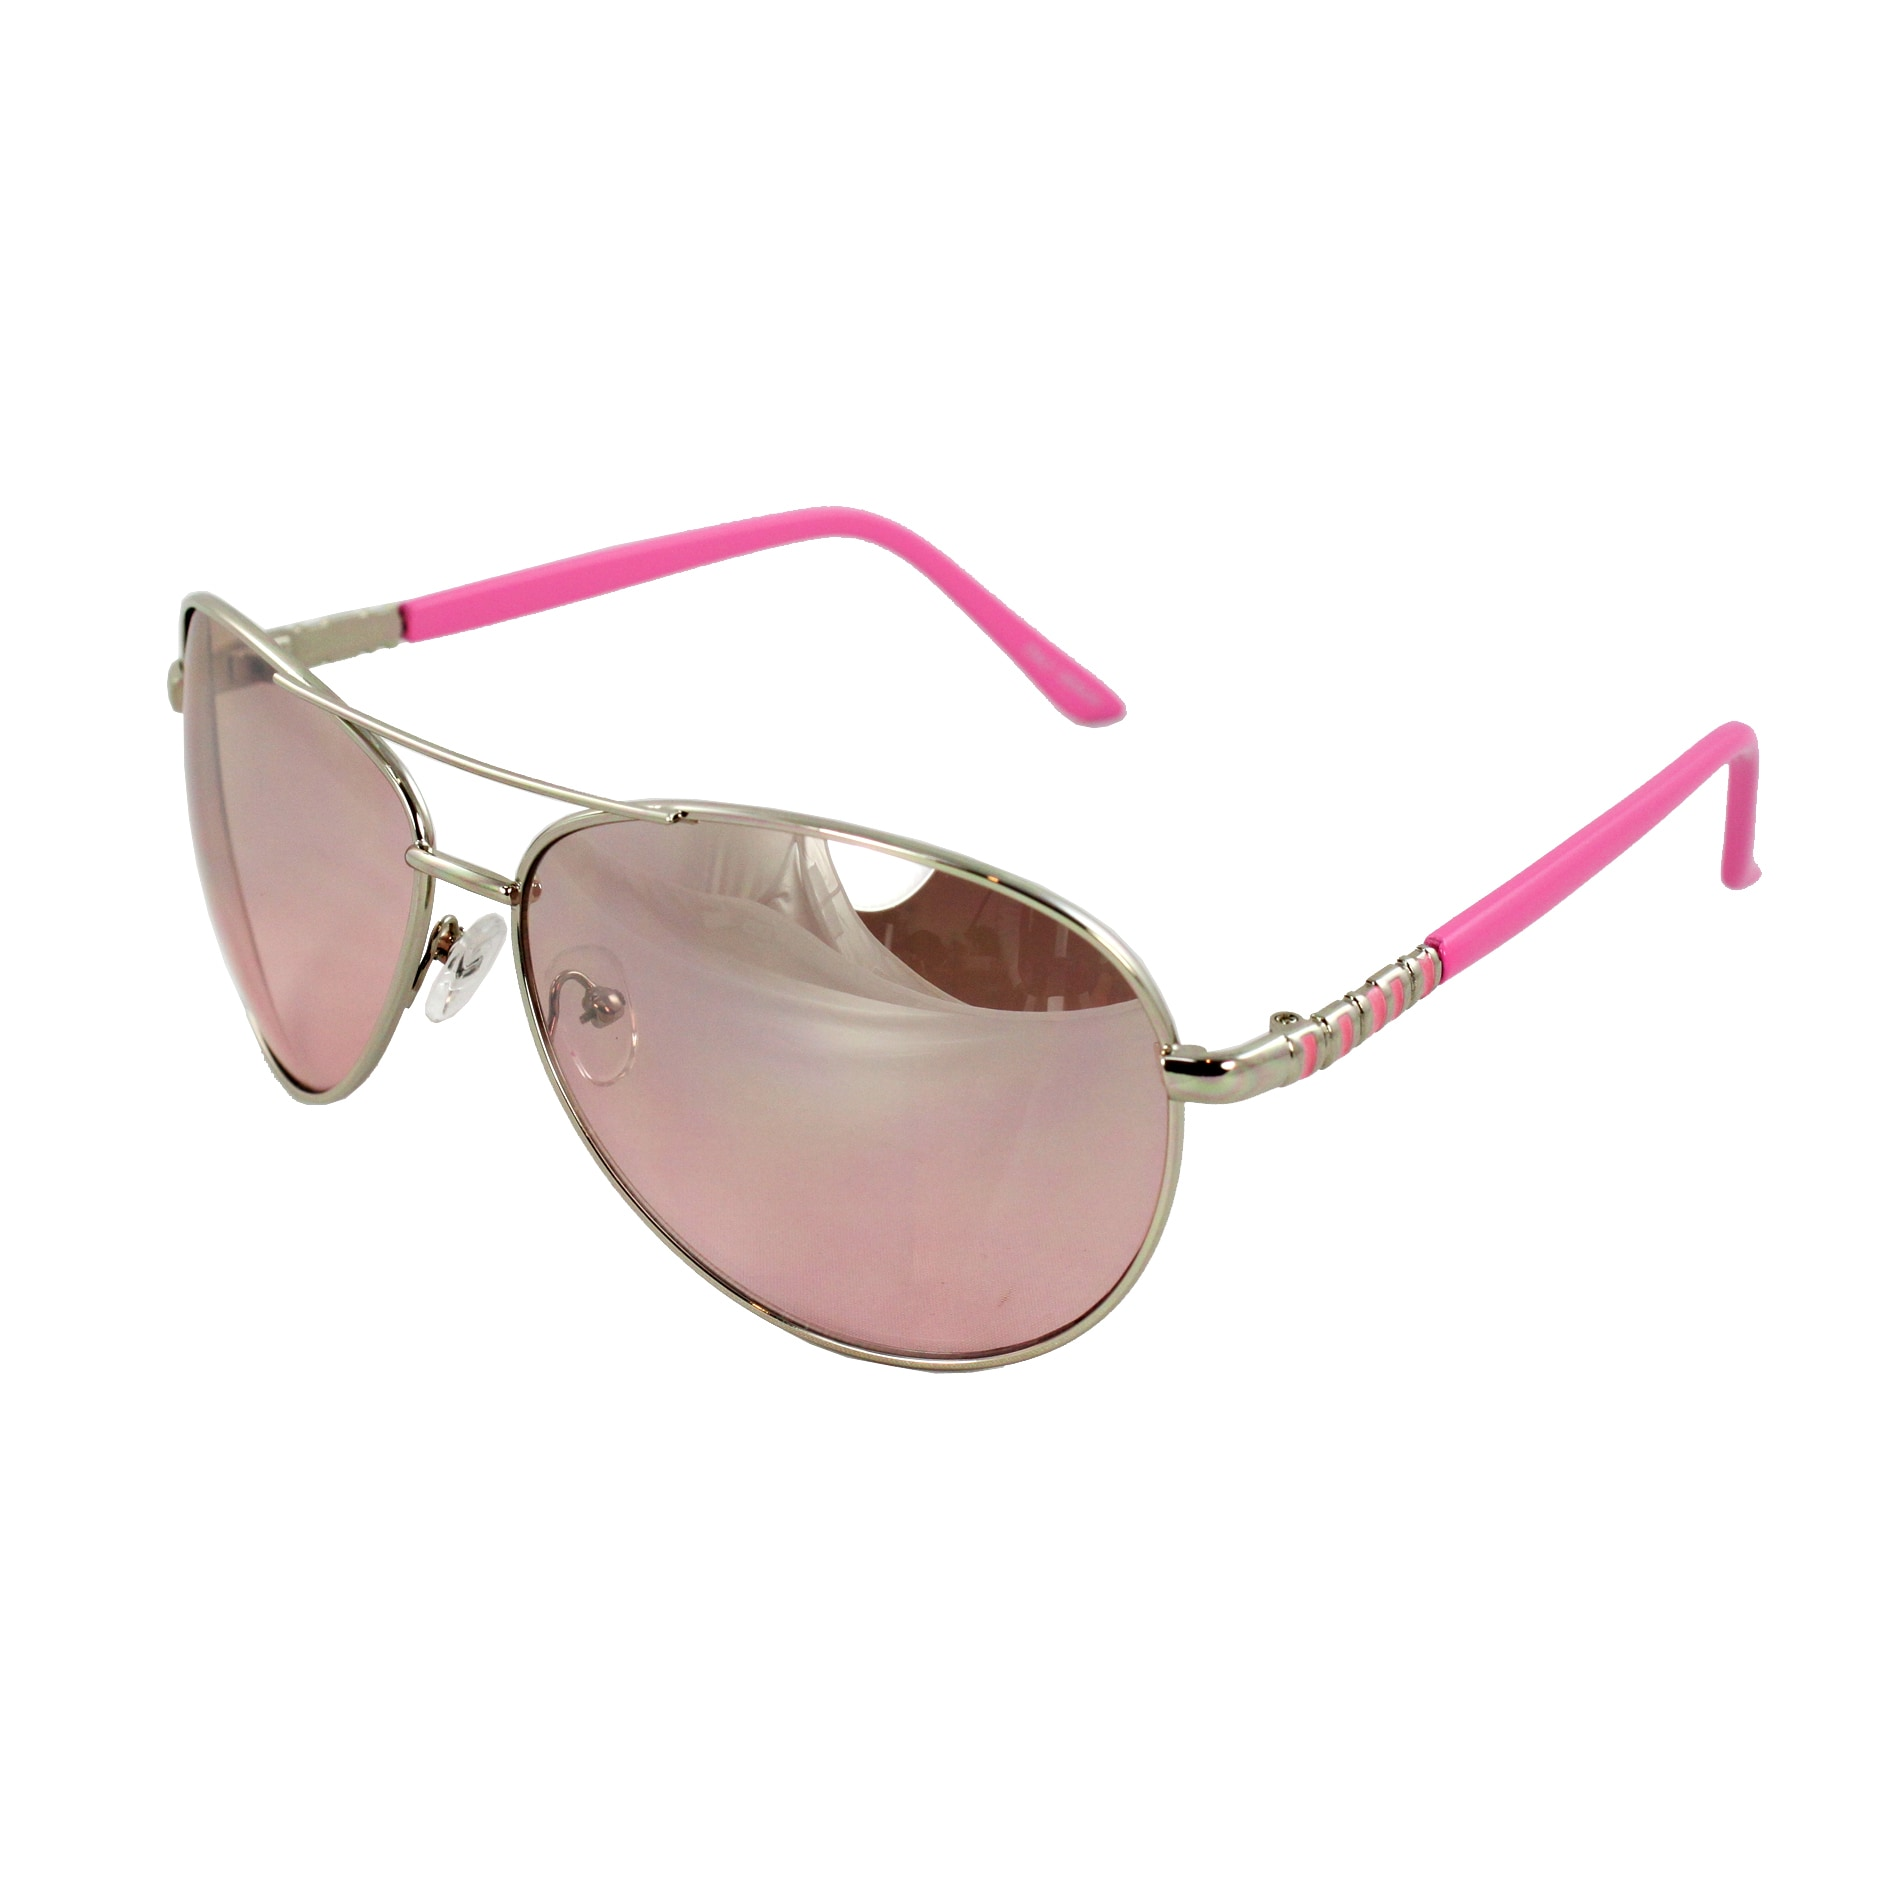 Pilot Fashion Aviator Sunglasses Silver and Pink Frame Pink Gradient Lenses for Men and Women